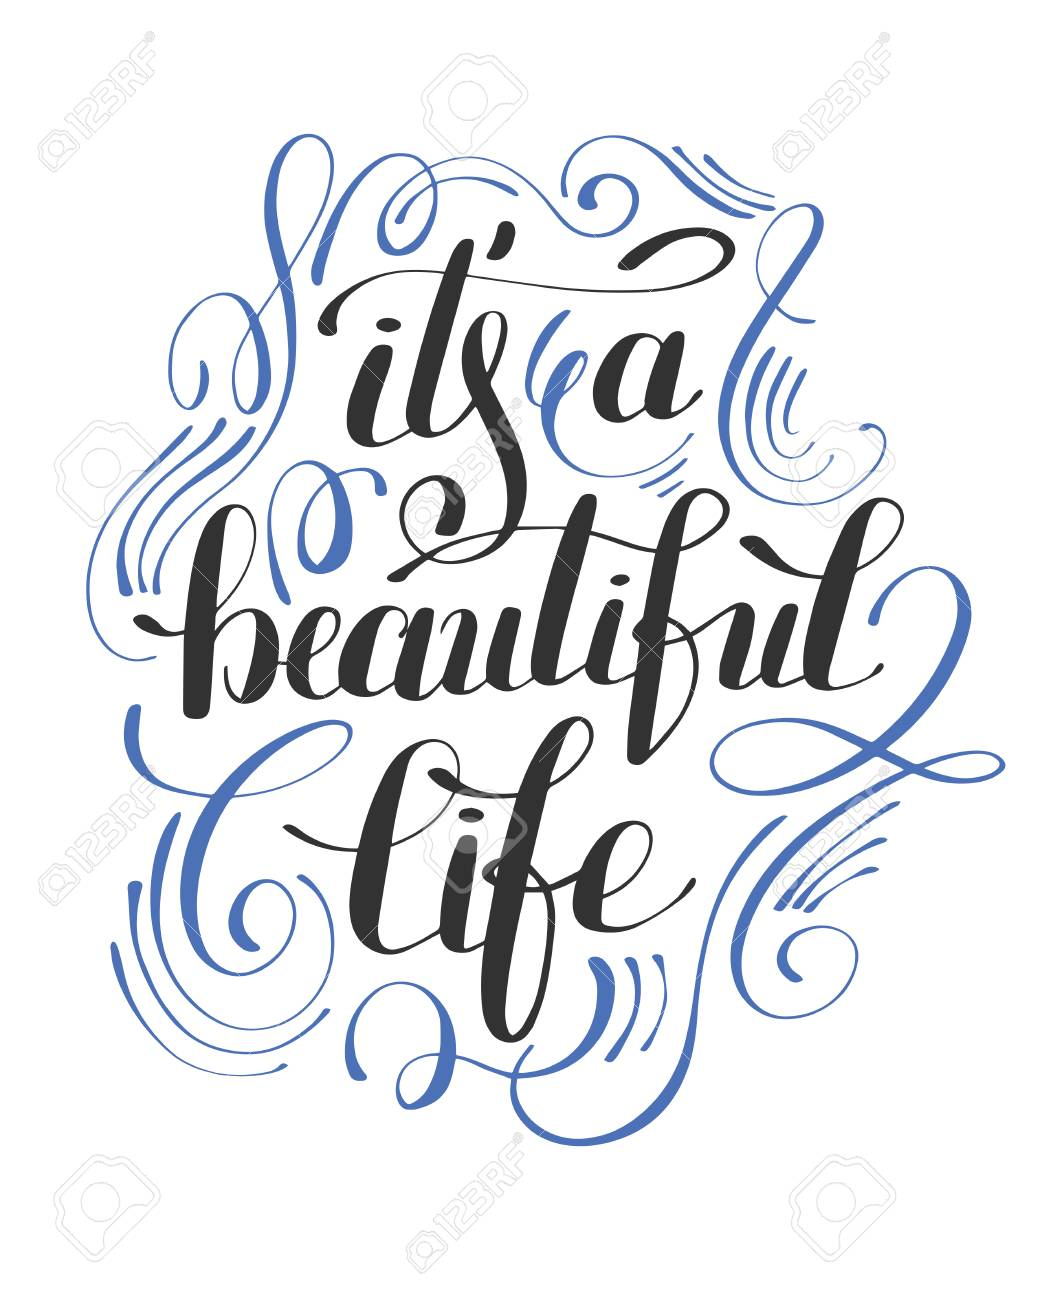 Its A Beautiful Life Positive Hand Lettering Typography Poster Conceptual Handwritten Phrase Modern Calligraphy